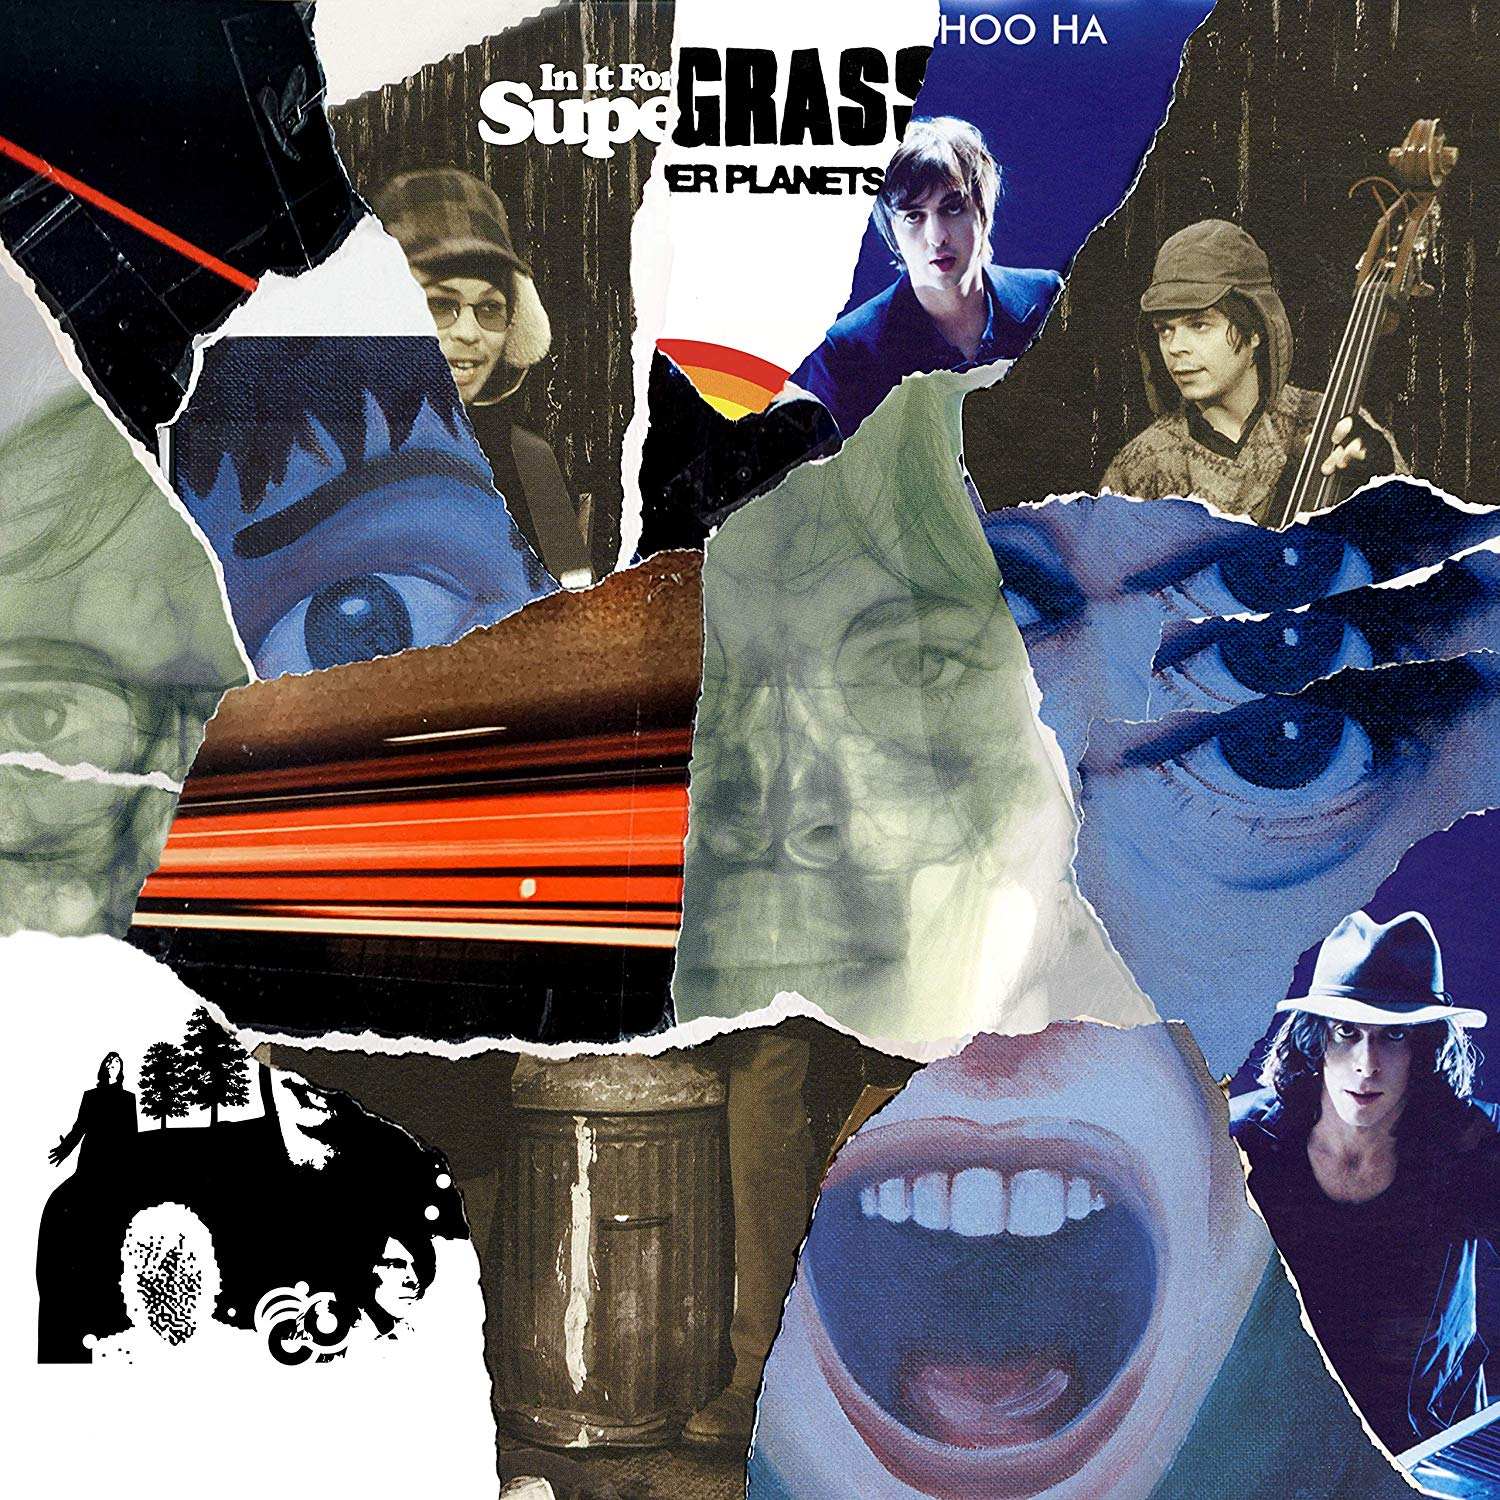 Supergrass - The Strange Ones: 1994-2008 [2LP]